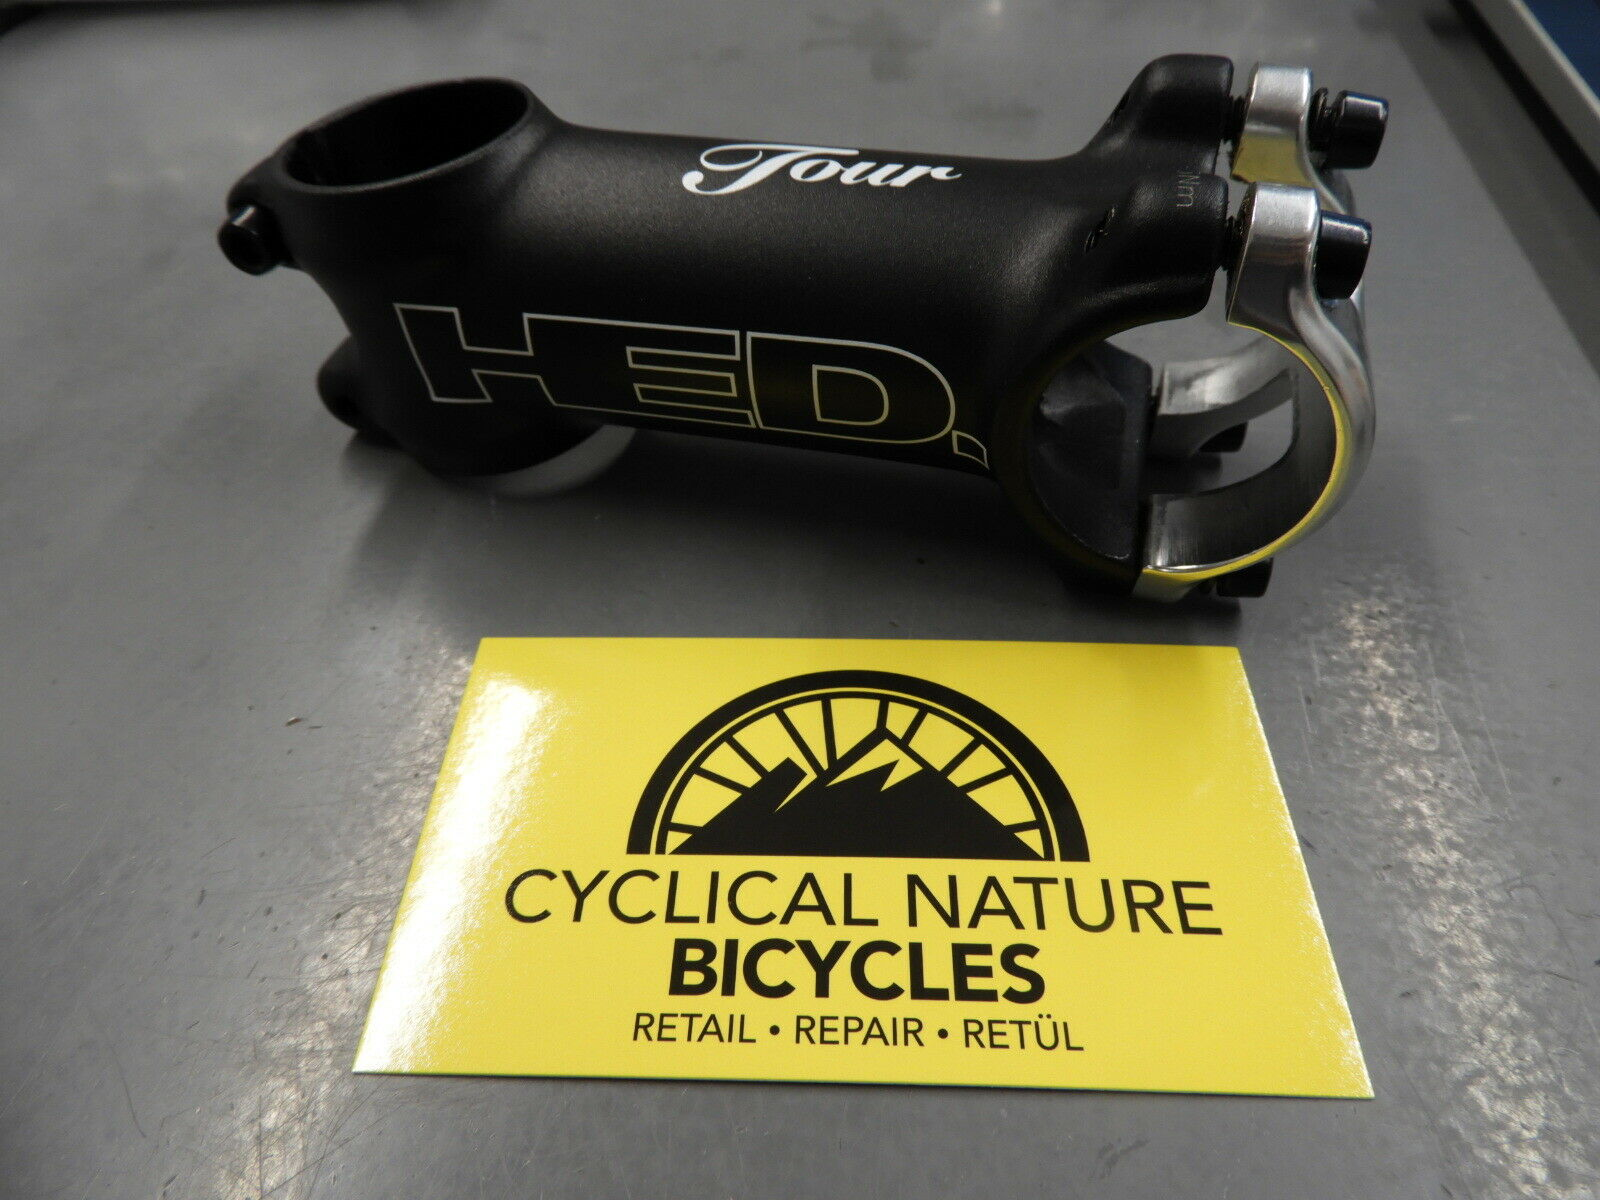 HED Tour Alloy Bicycle Stem 31.8mm Clamp 6 Degree 80mm Length